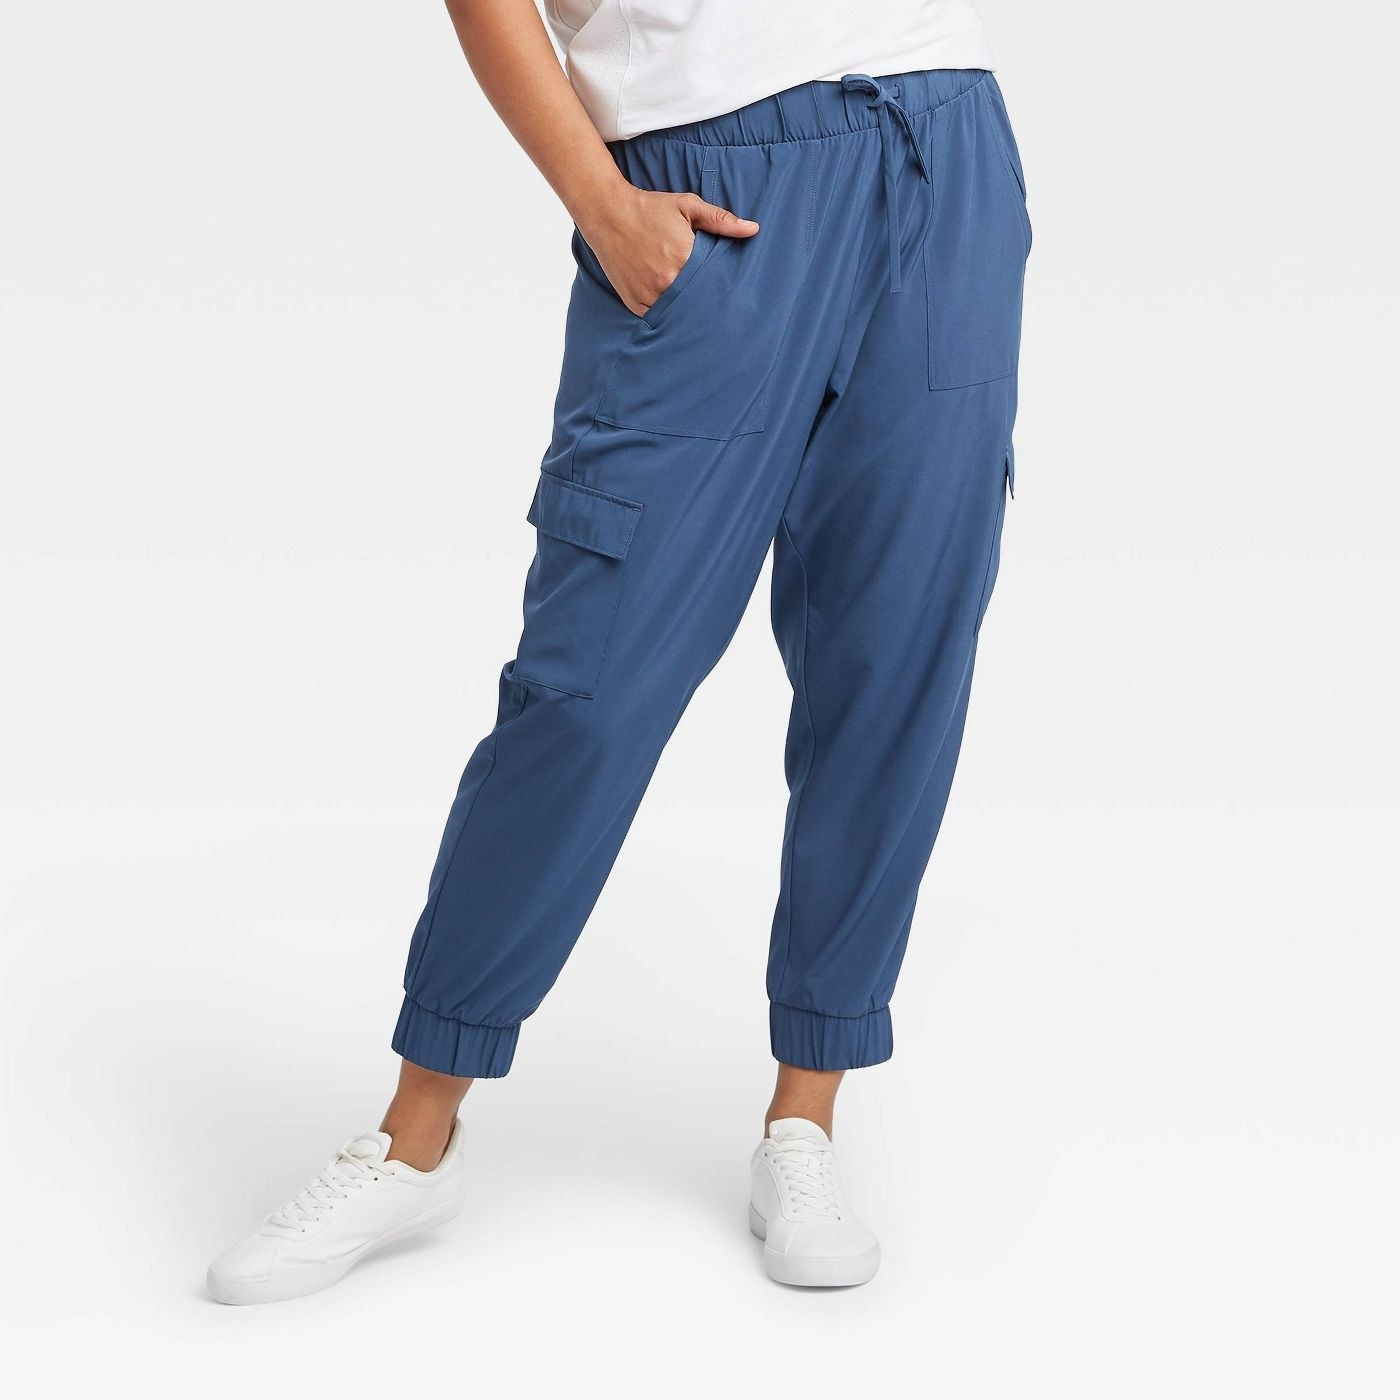 model wearing blue joggers with drawstring waist